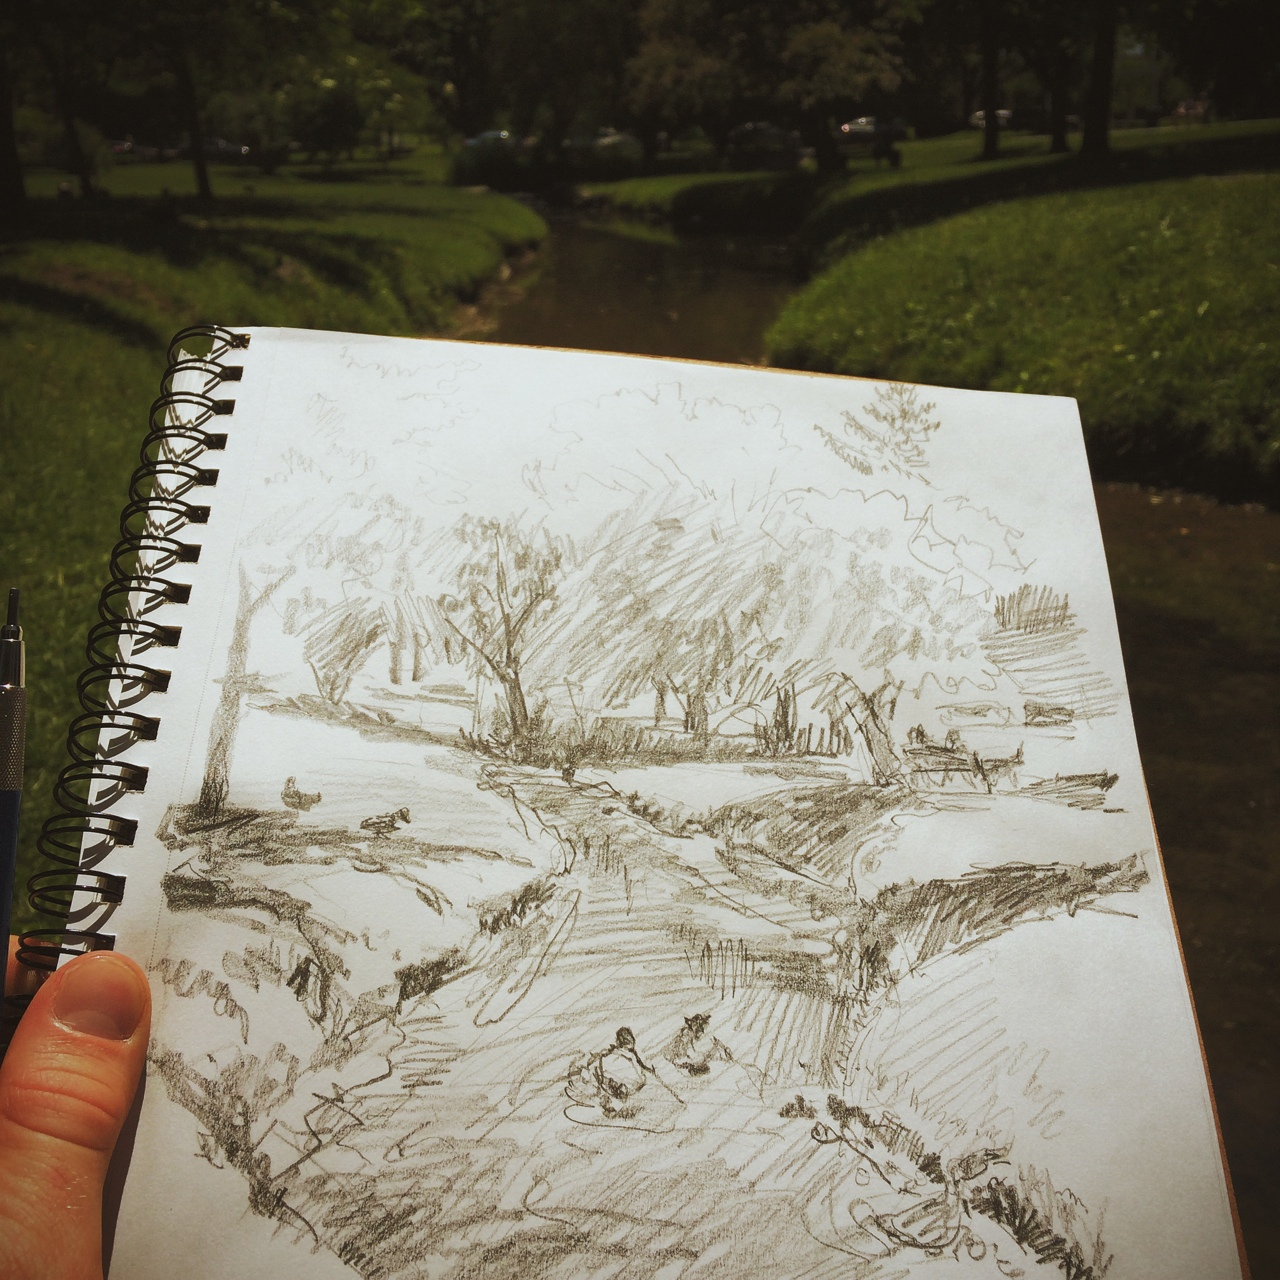 plein air sketch in Congress Park on this beauteous day